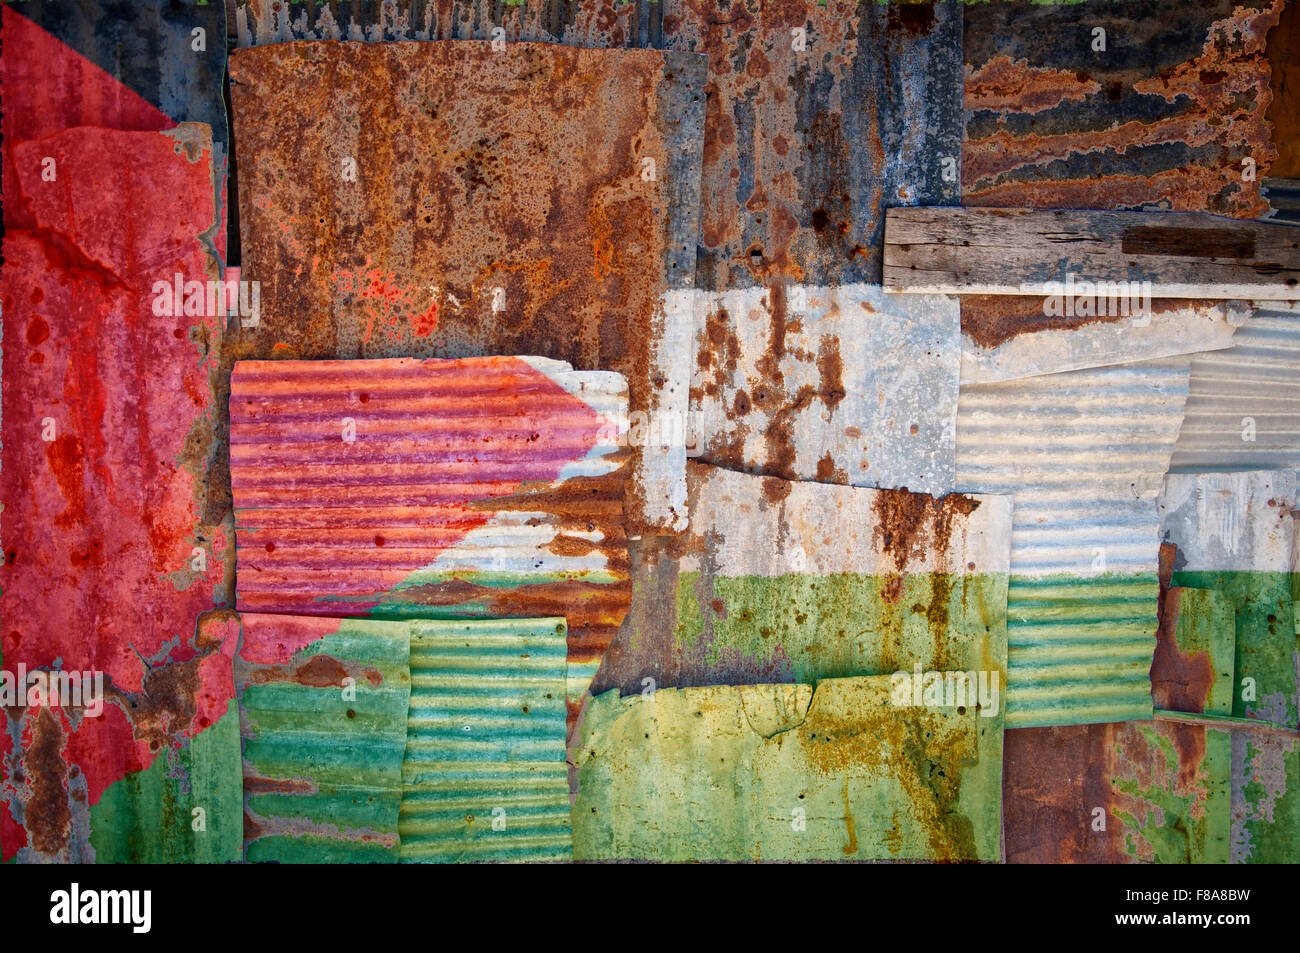 An abstract background image of the flag of Palestine painted on to rusty corrugated iron sheets overlapping to - Stock Image